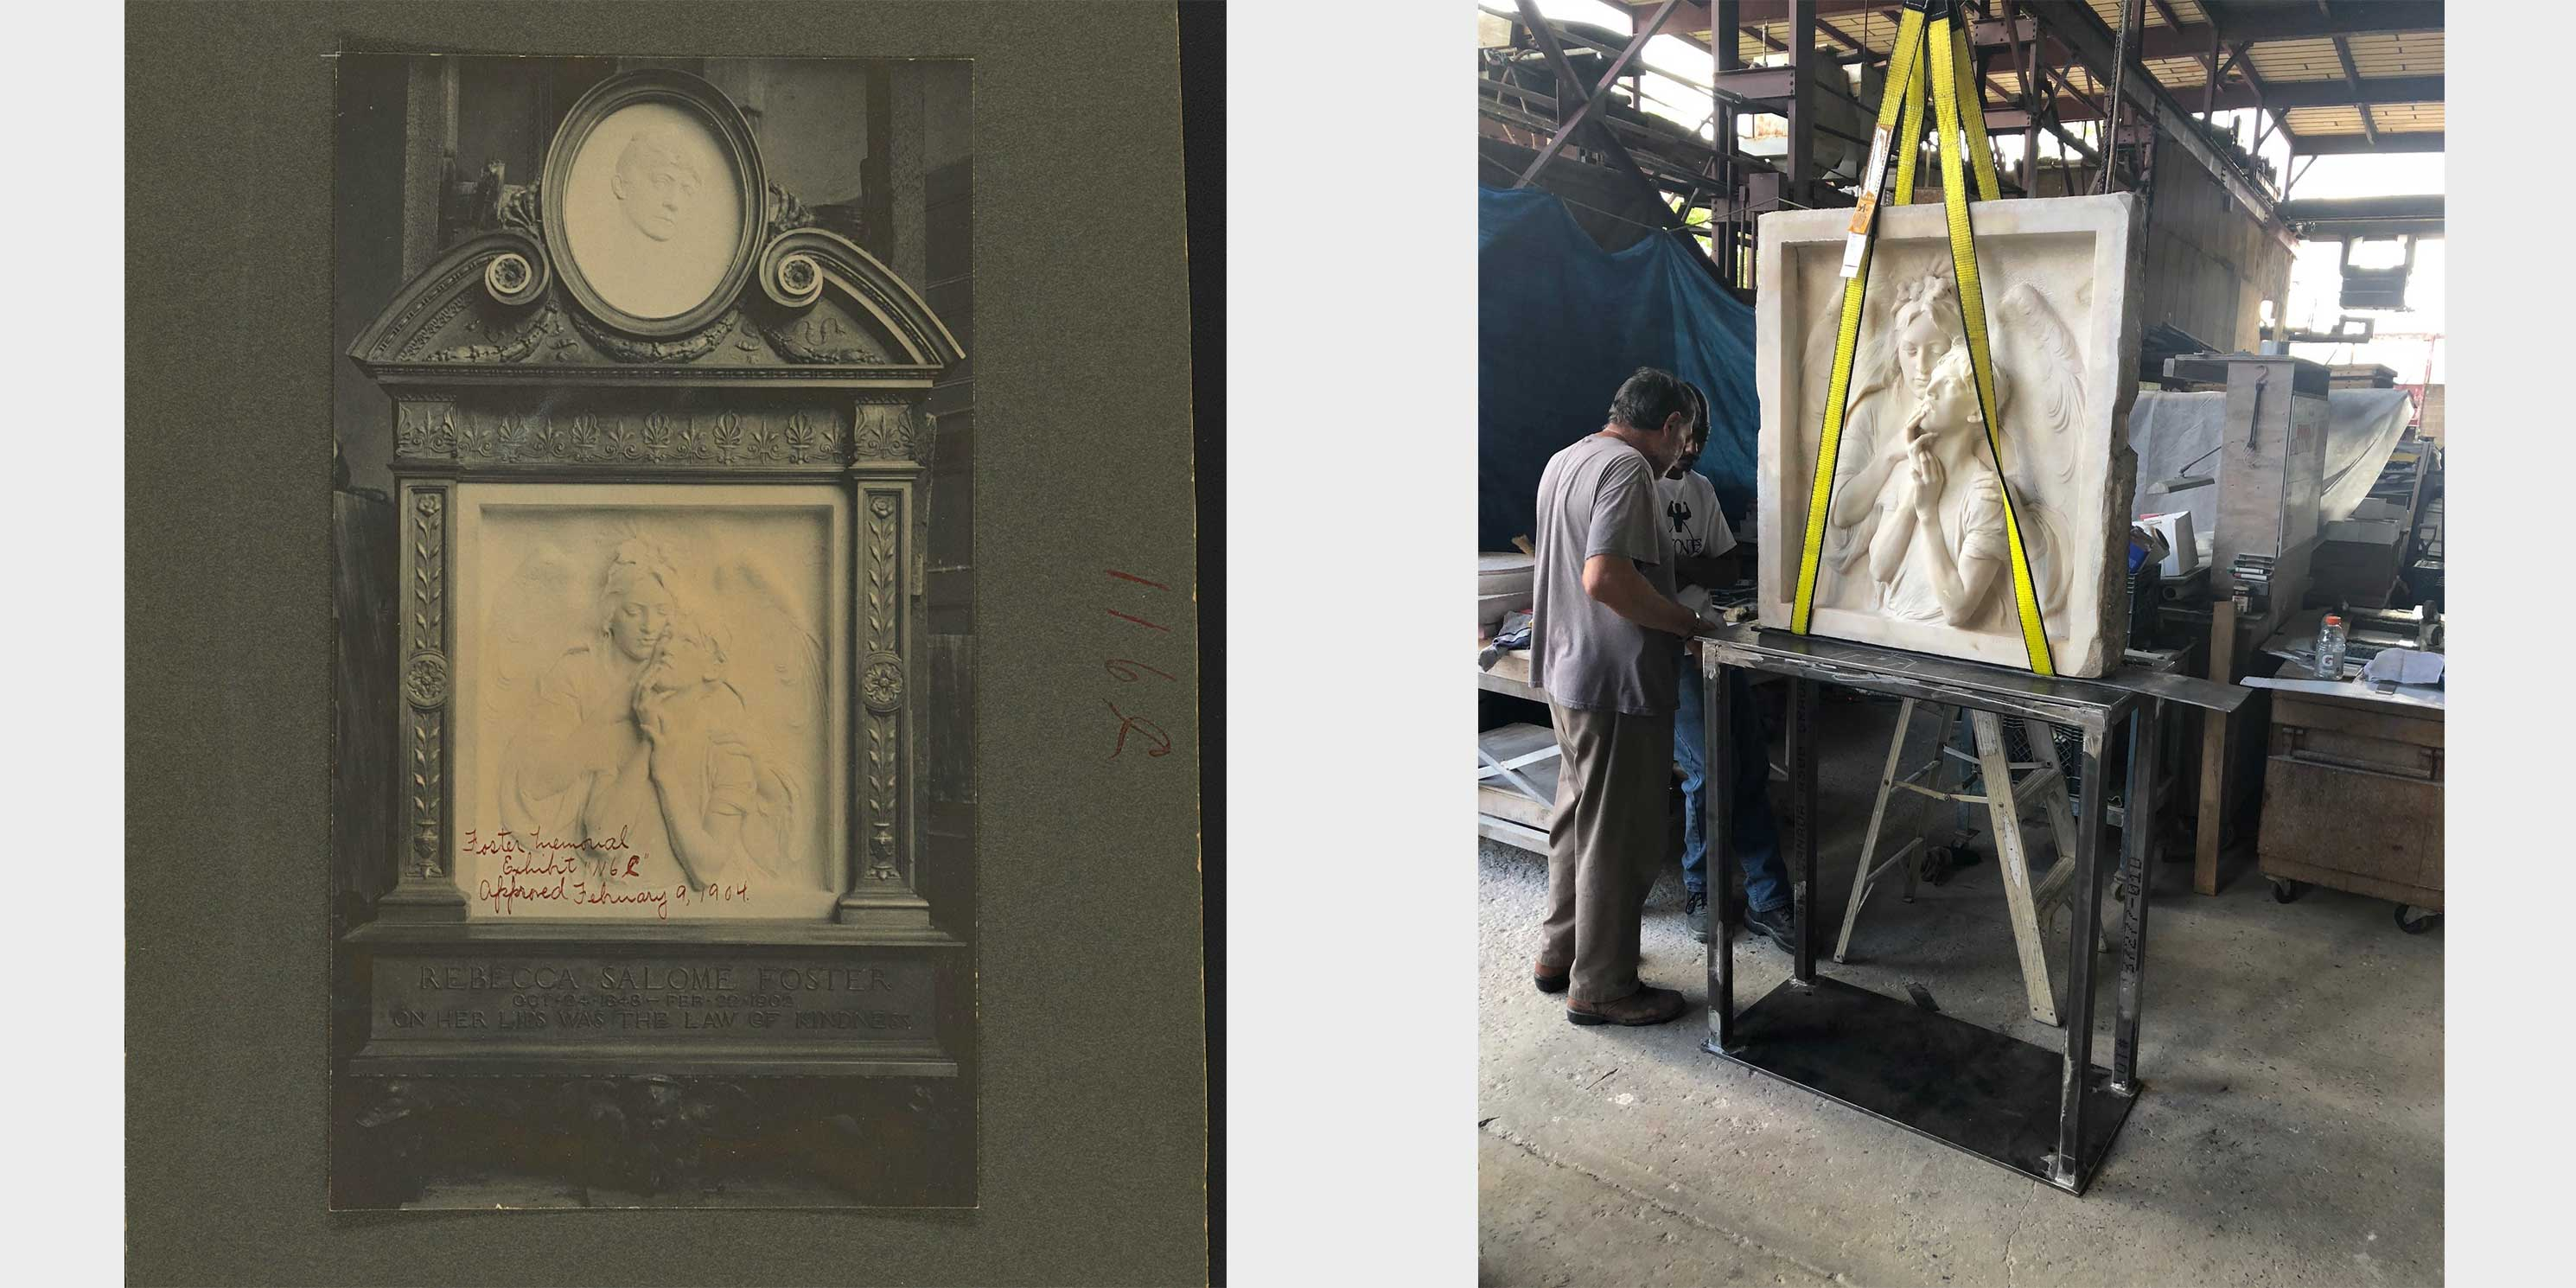 before and after restoration photos of the Rebecca Salome Foster Memorial